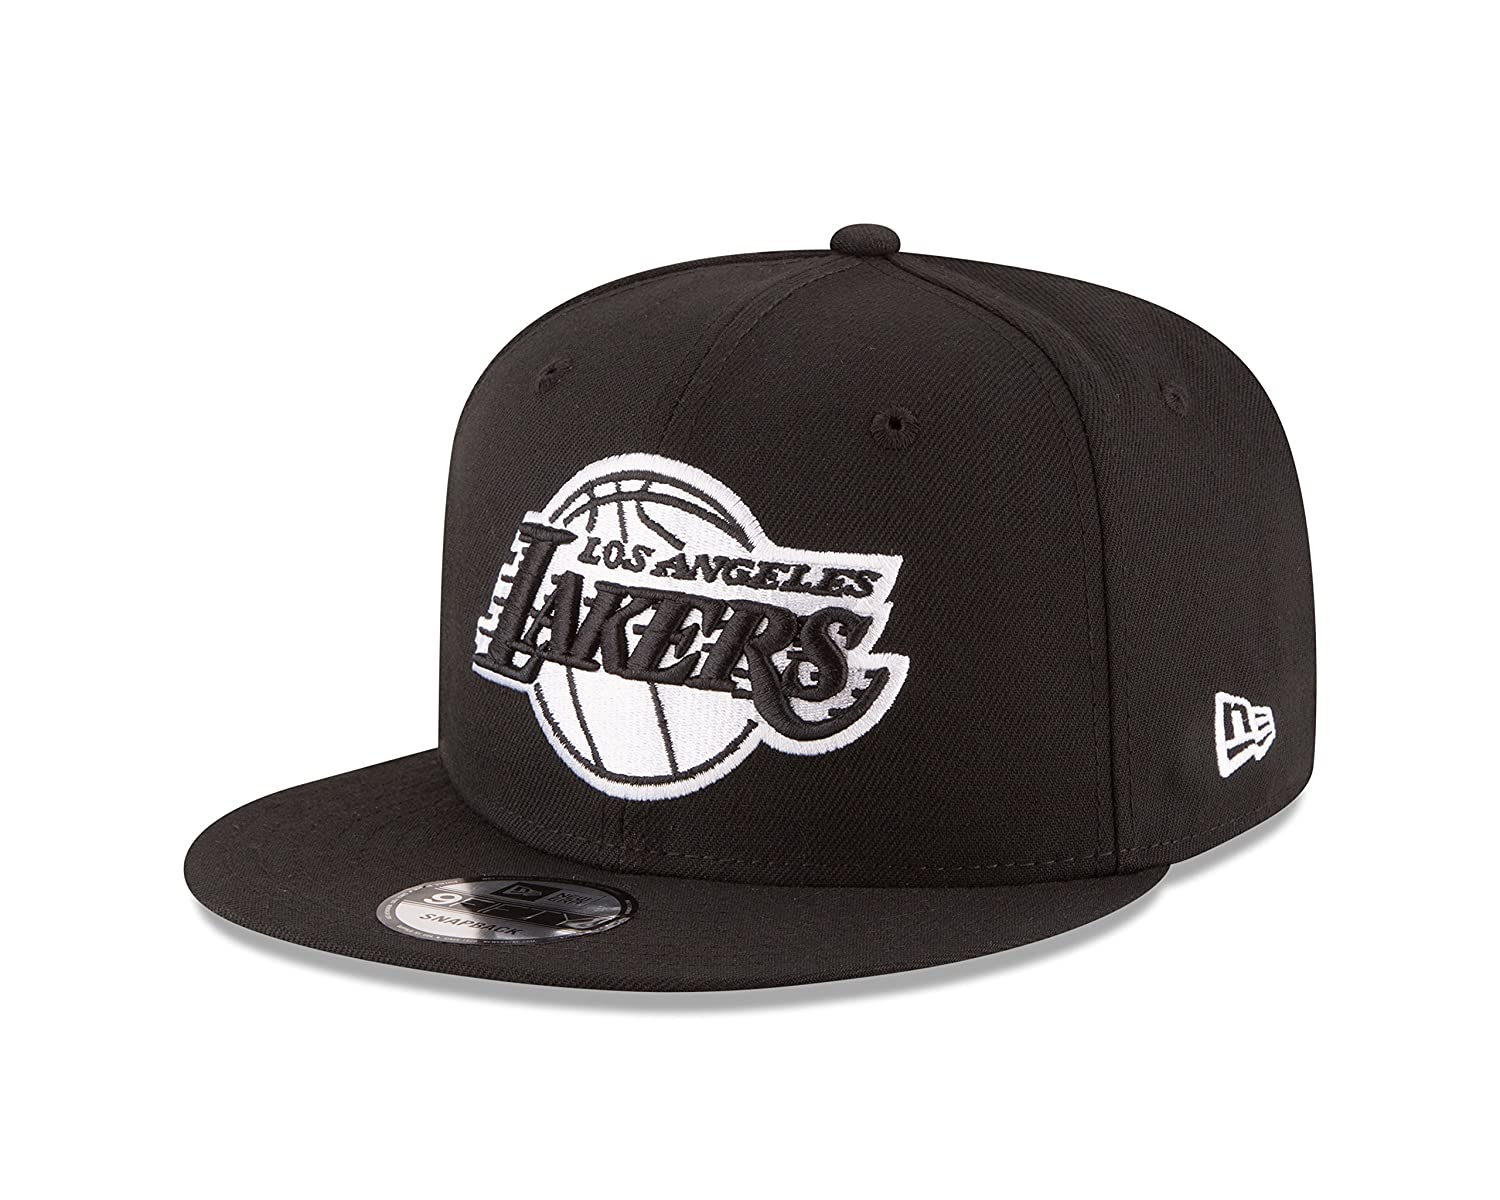 best loved b833b 6b597 Amazon.com   NBA Los Angeles Lakers Men s 9Fifty Snapback Cap, One Size,  Black   Sports   Outdoors